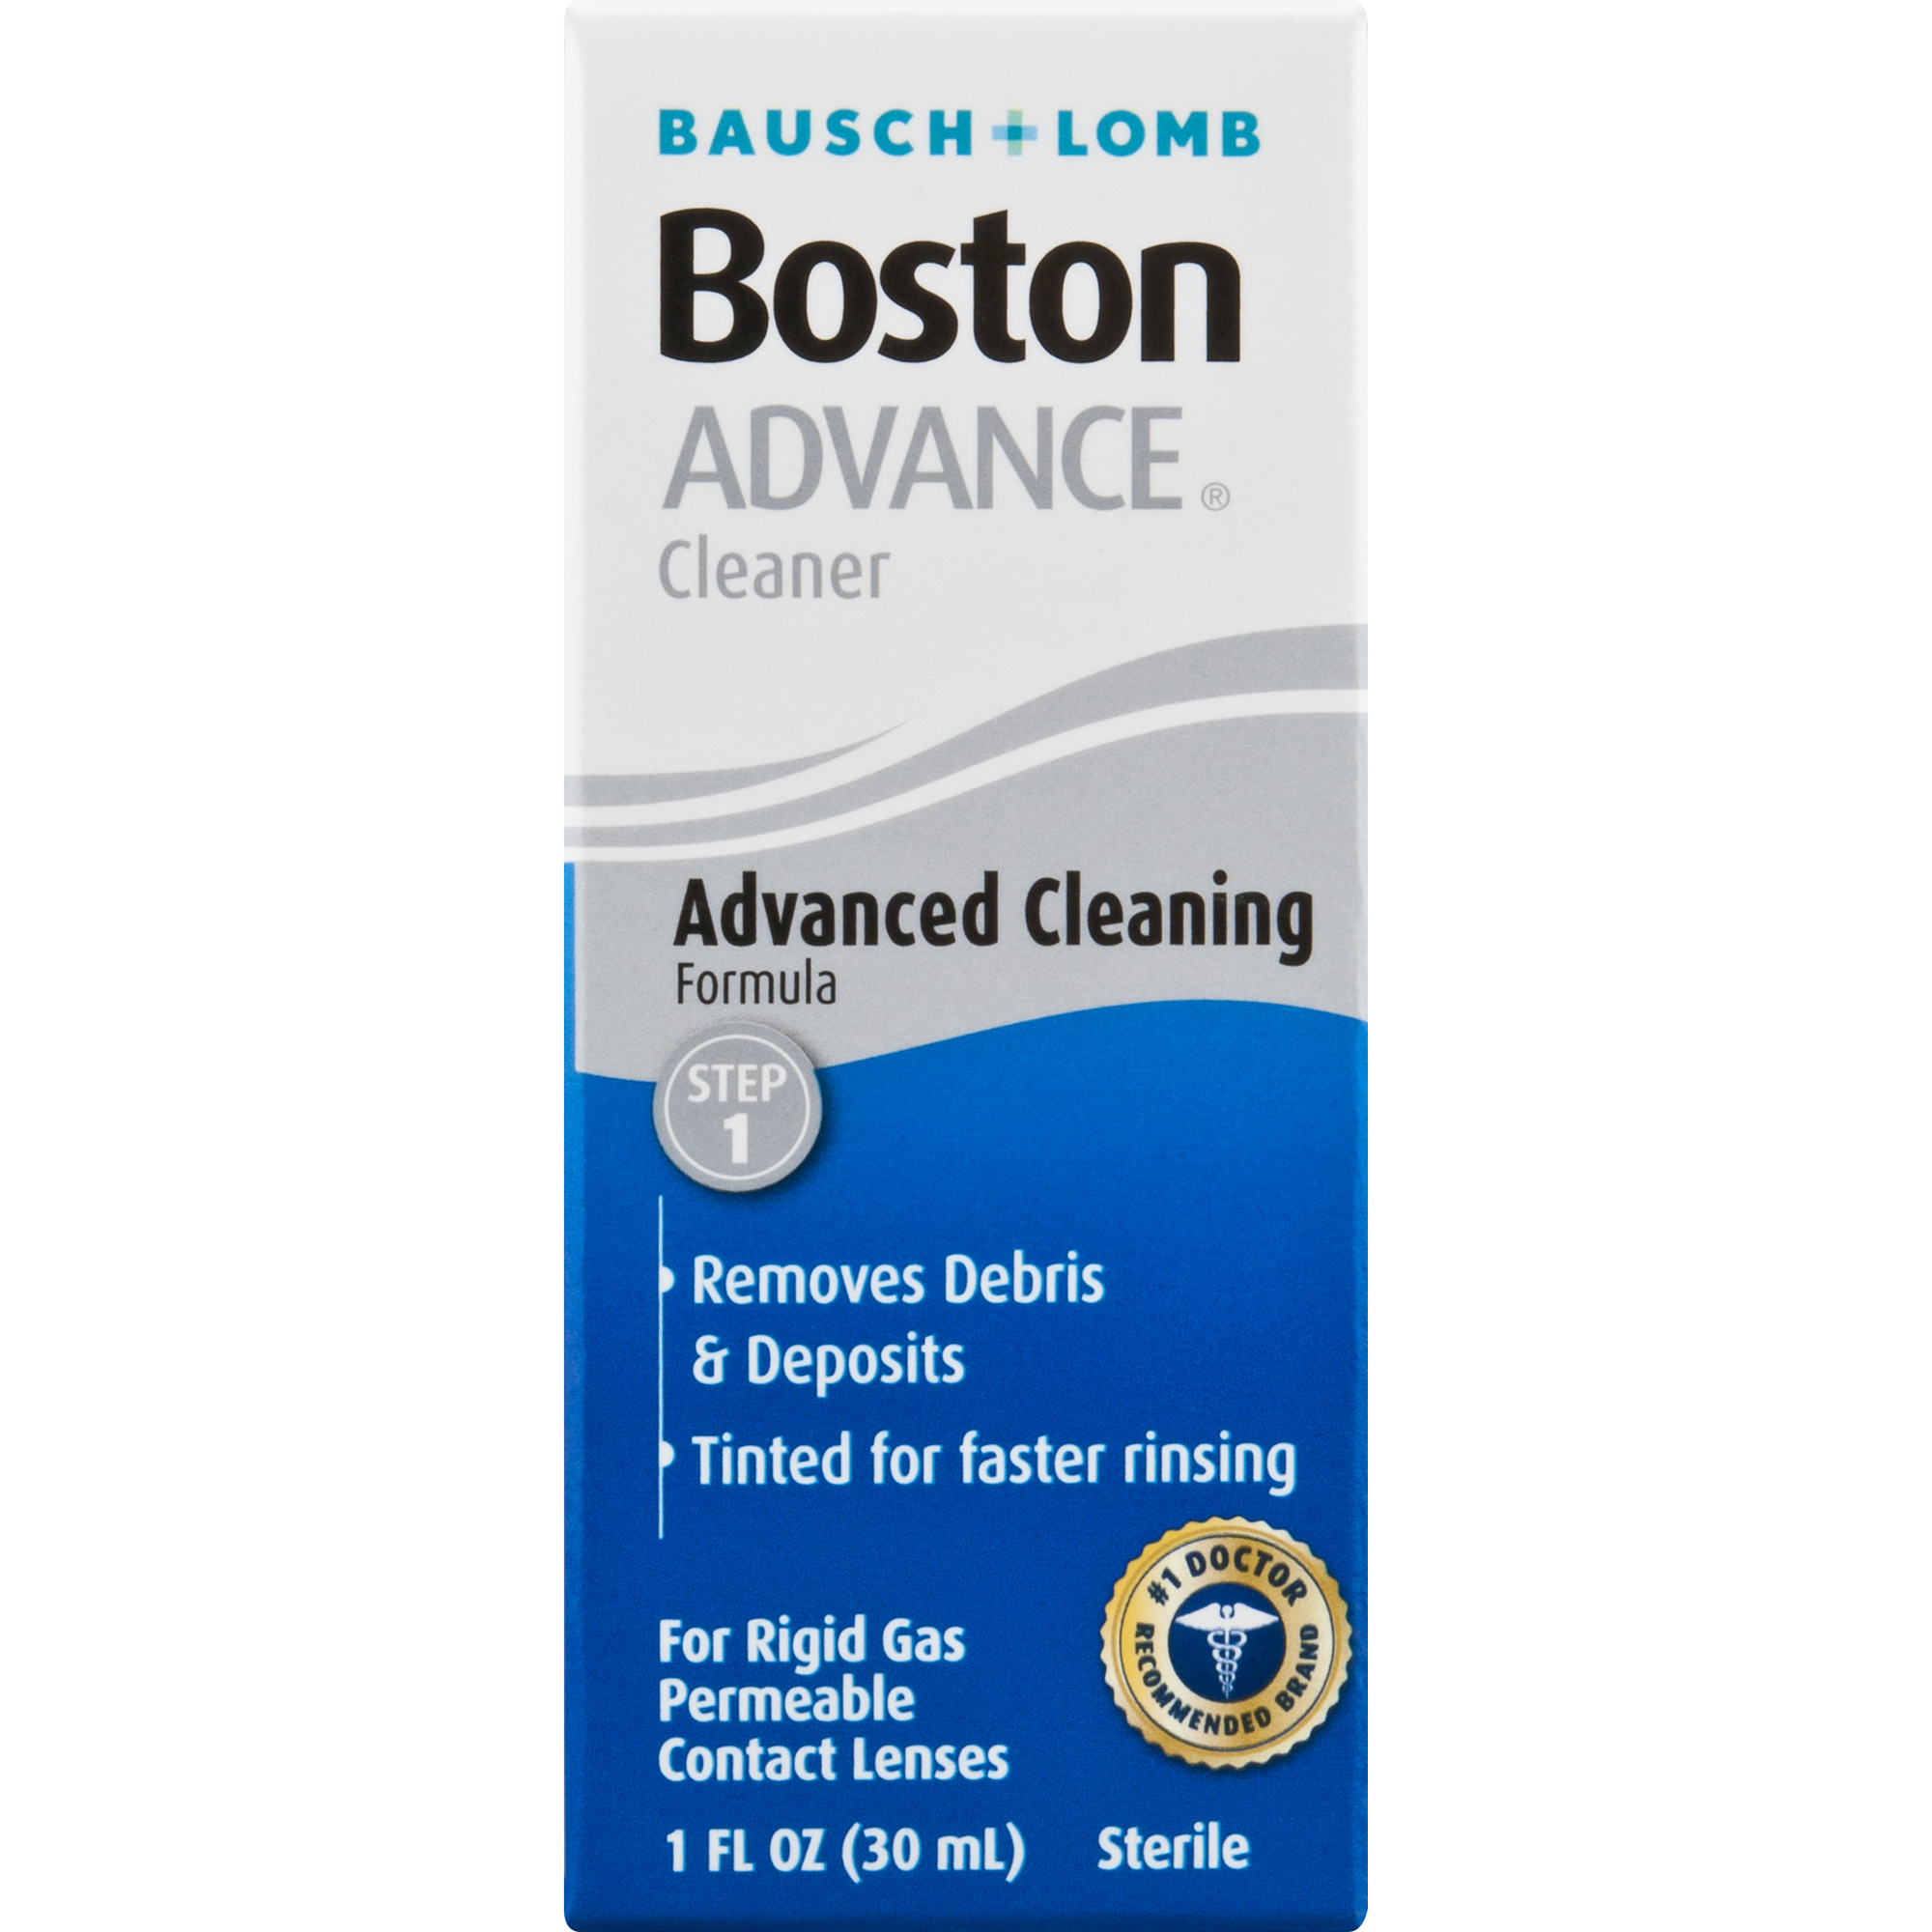 Bausch & Lomb Boston Advance Formula Cleaner, 1 fl oz